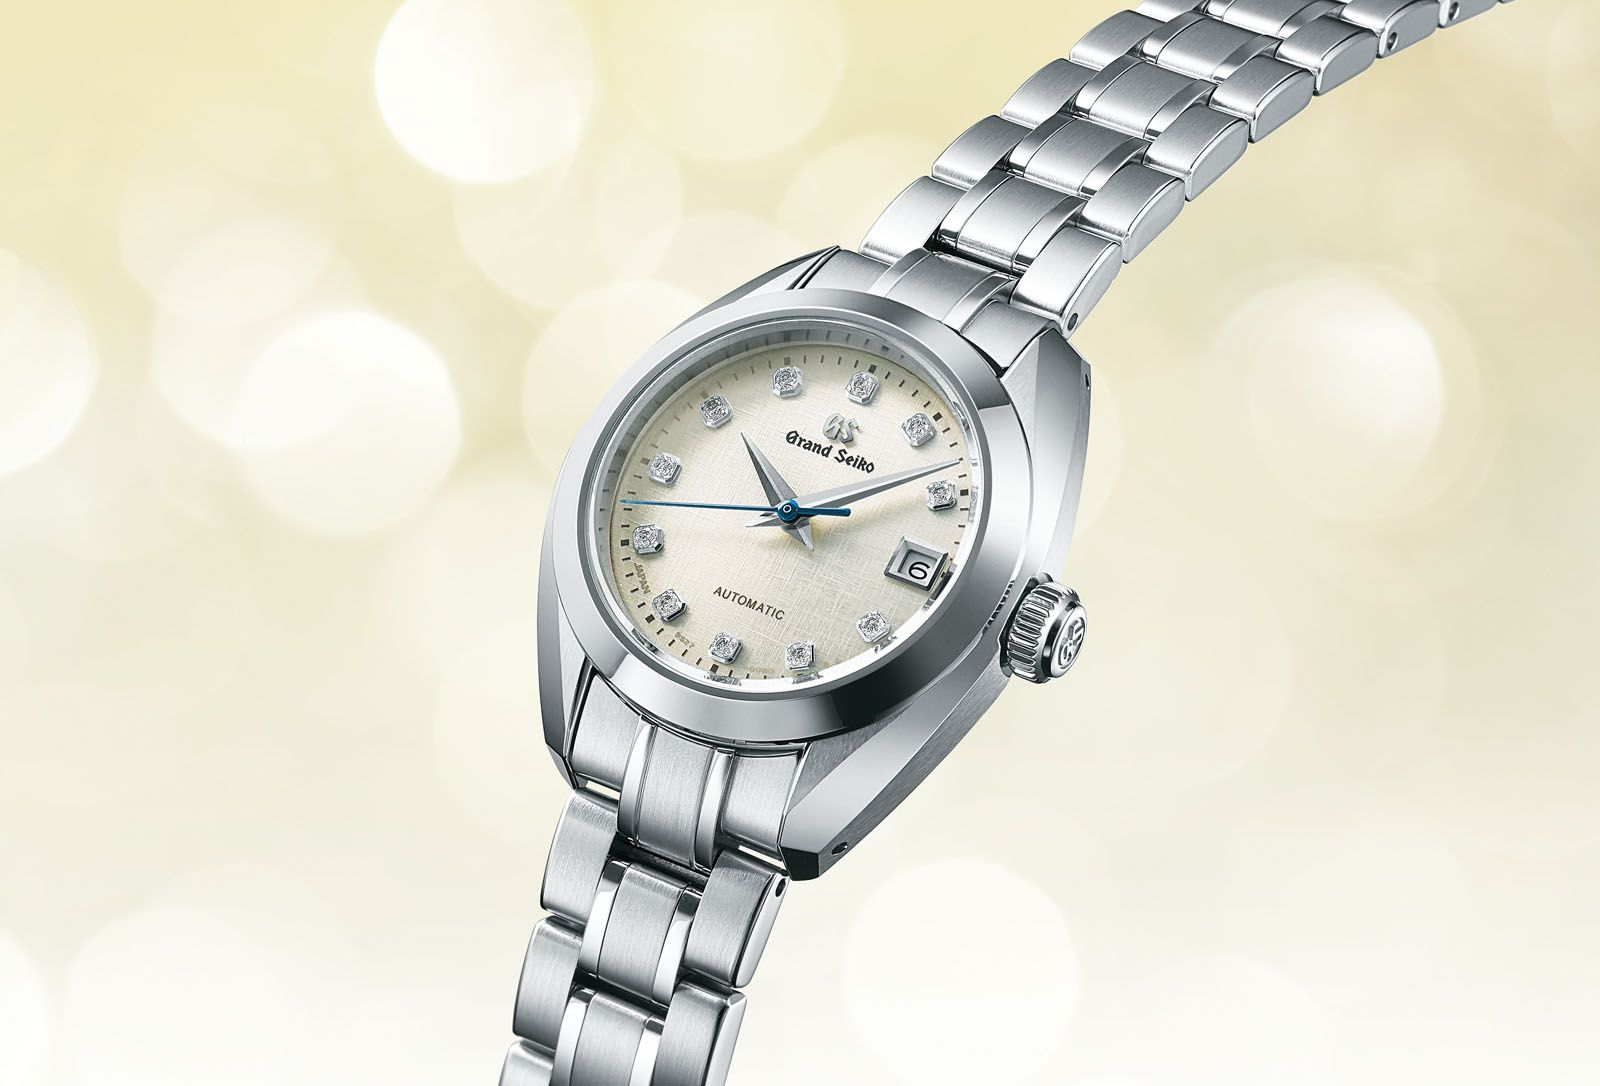 The Grand Seiko STGK007 (27.8mm)is a classic everyday watch